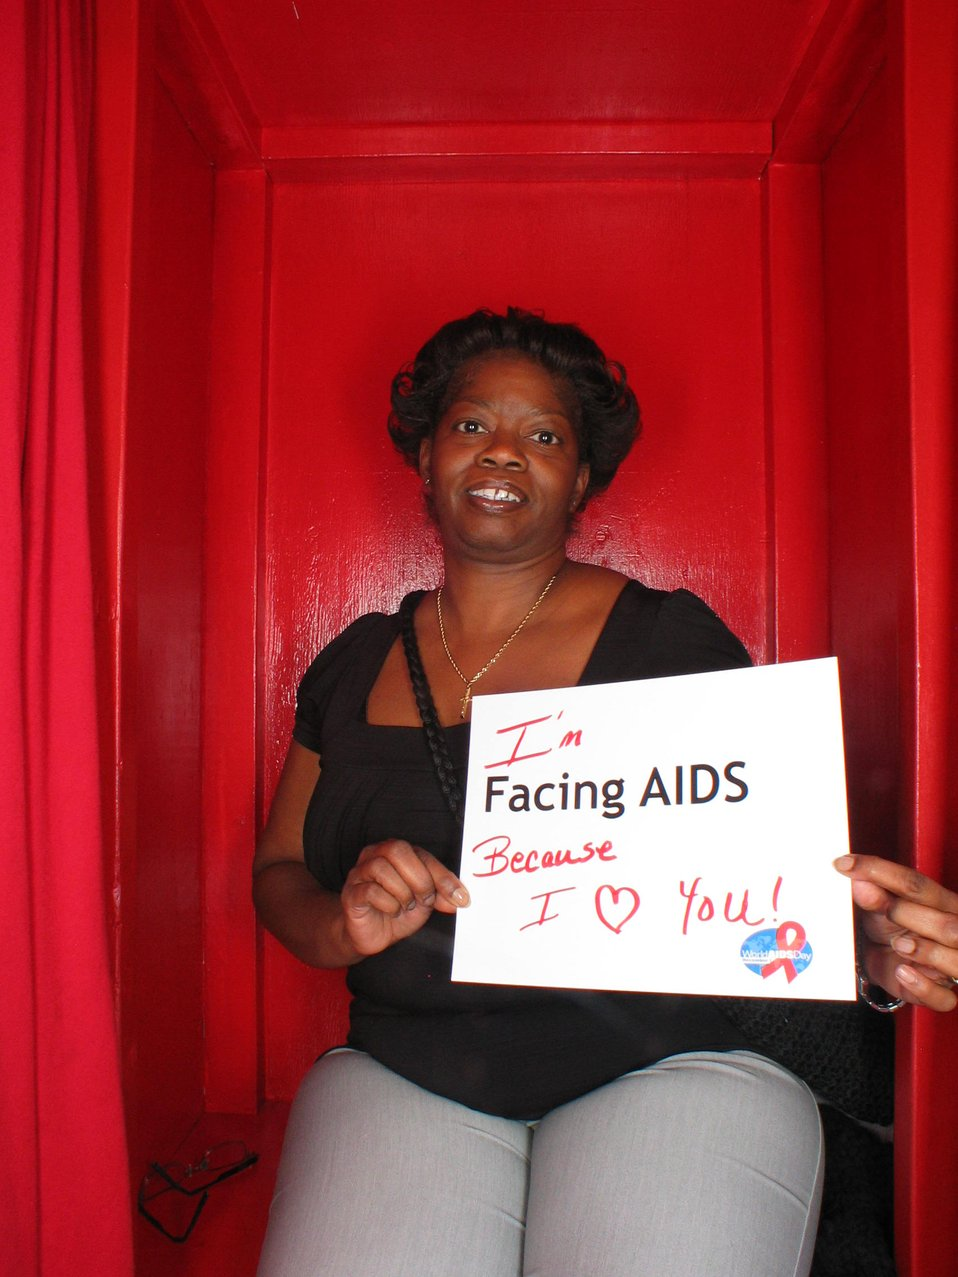 I'm Facing AIDS because I love you!